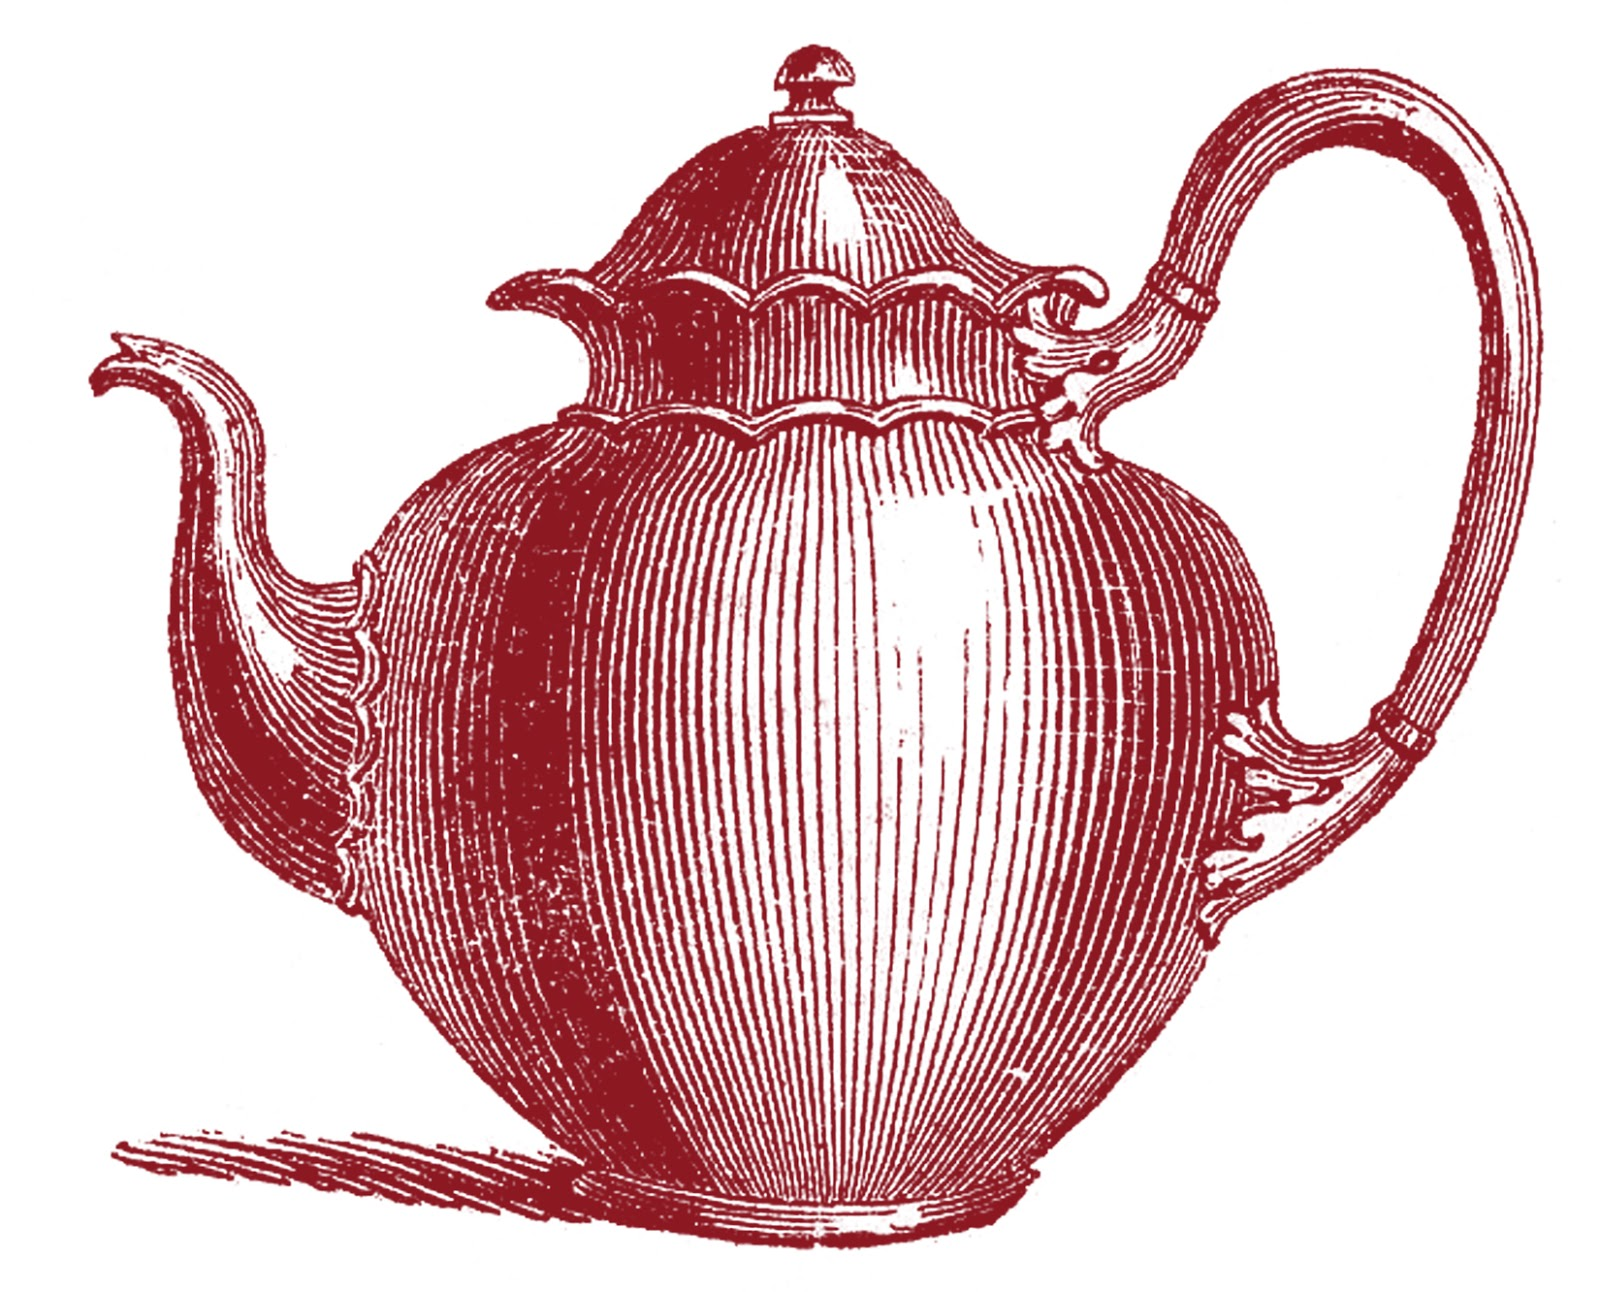 Looking For Teapots Royalty Free Images Antique Teapots The Graphics Fairy